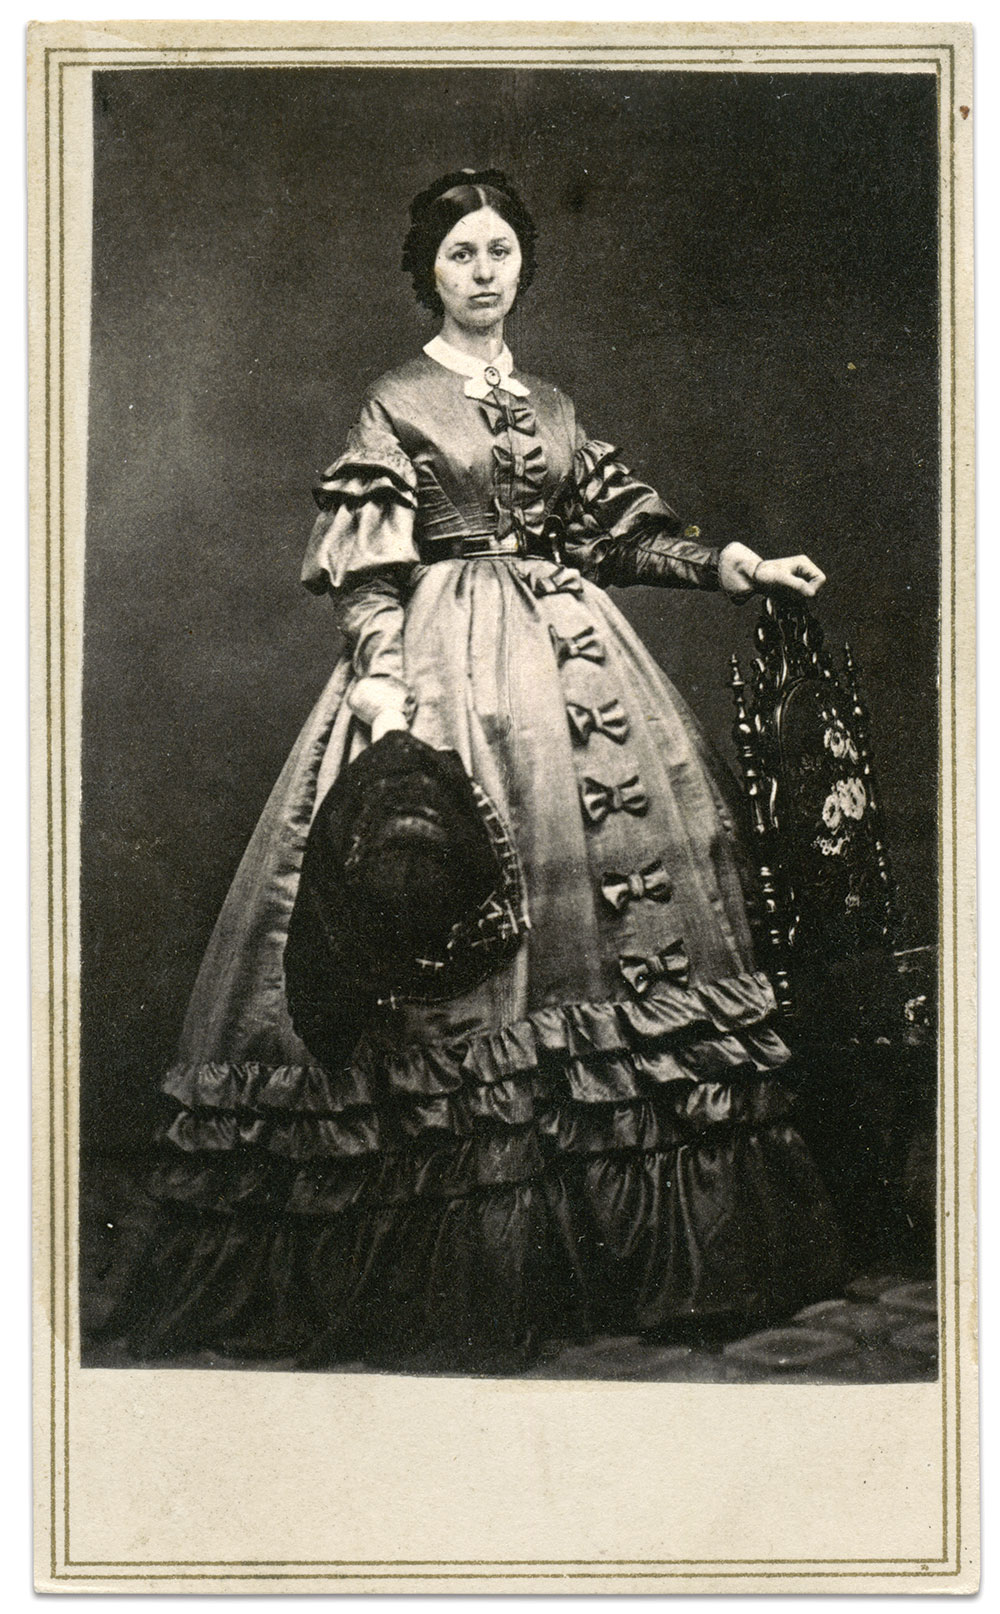 Carte de visite by Edward and Henry T. Anthony of New York City. Chris Foard Collection.